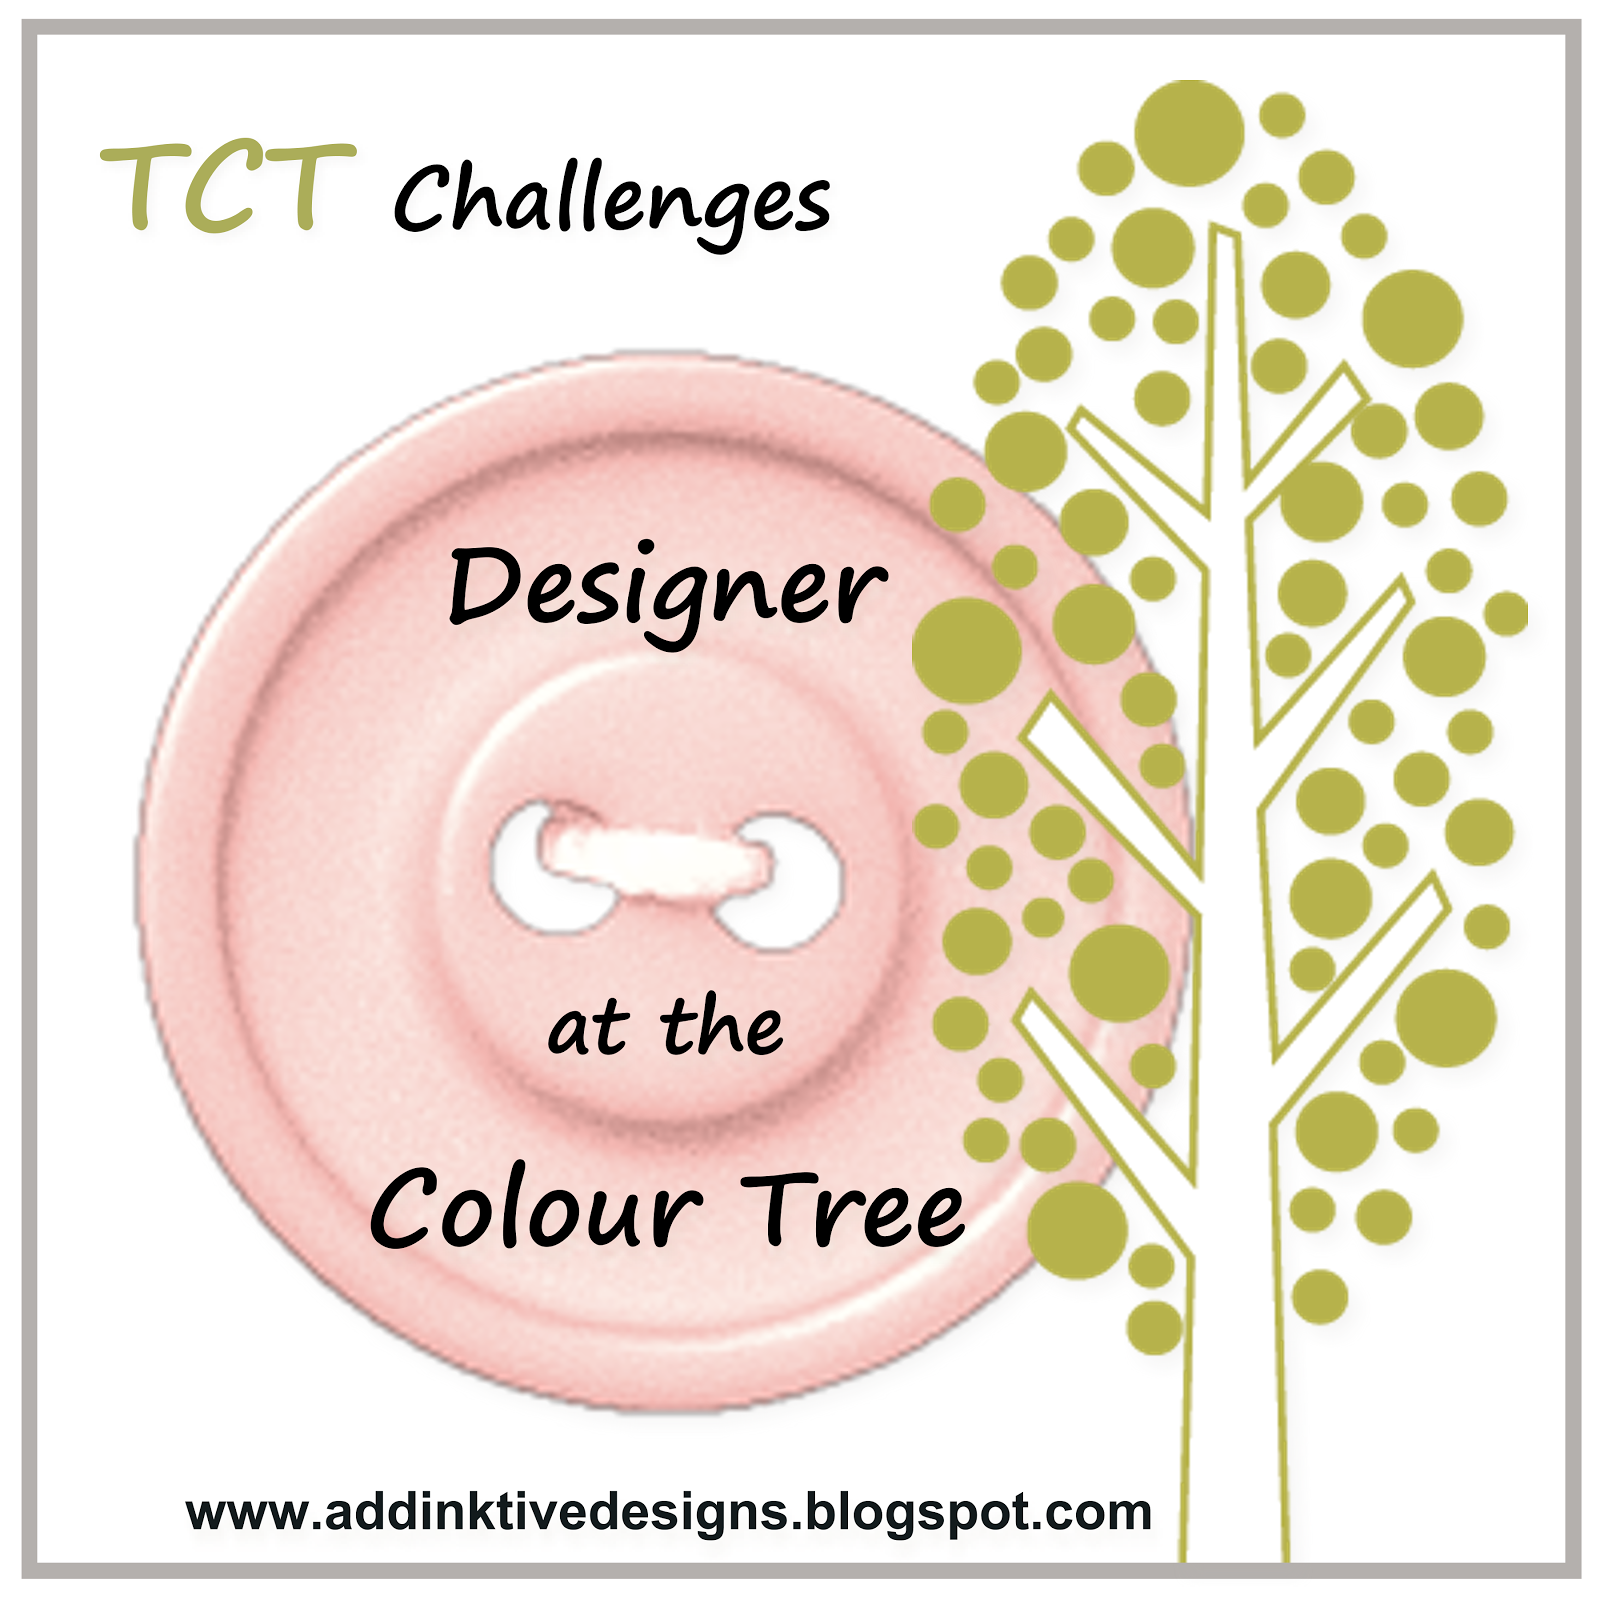 The Colour Tree